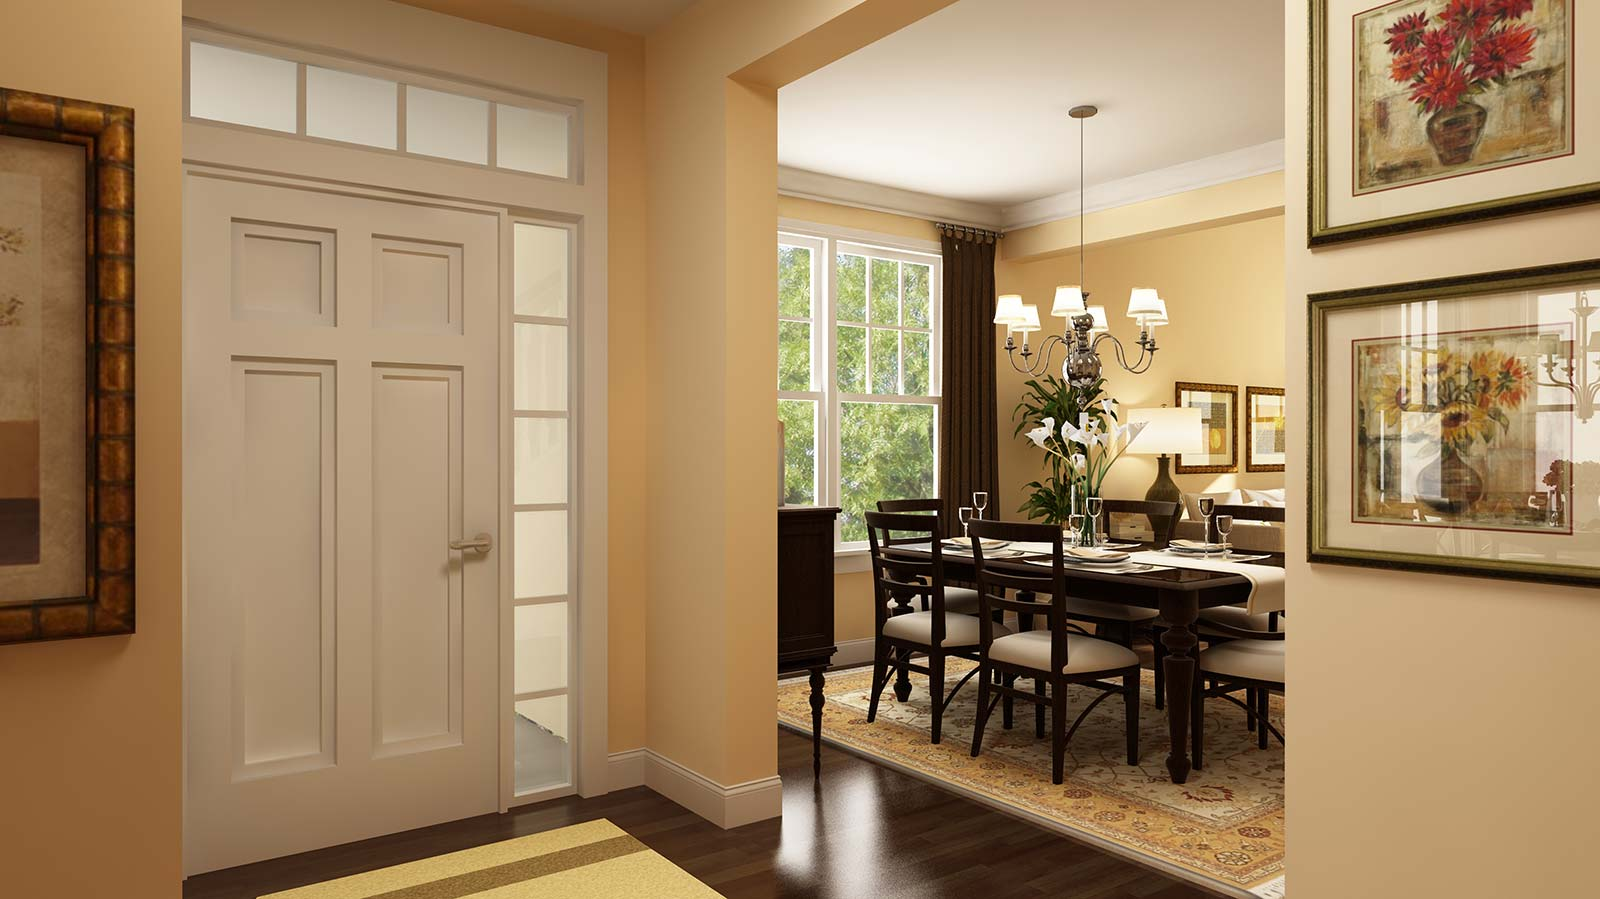 Windows at the front entry accent the hardwood floors at for Entryway dining room ideas